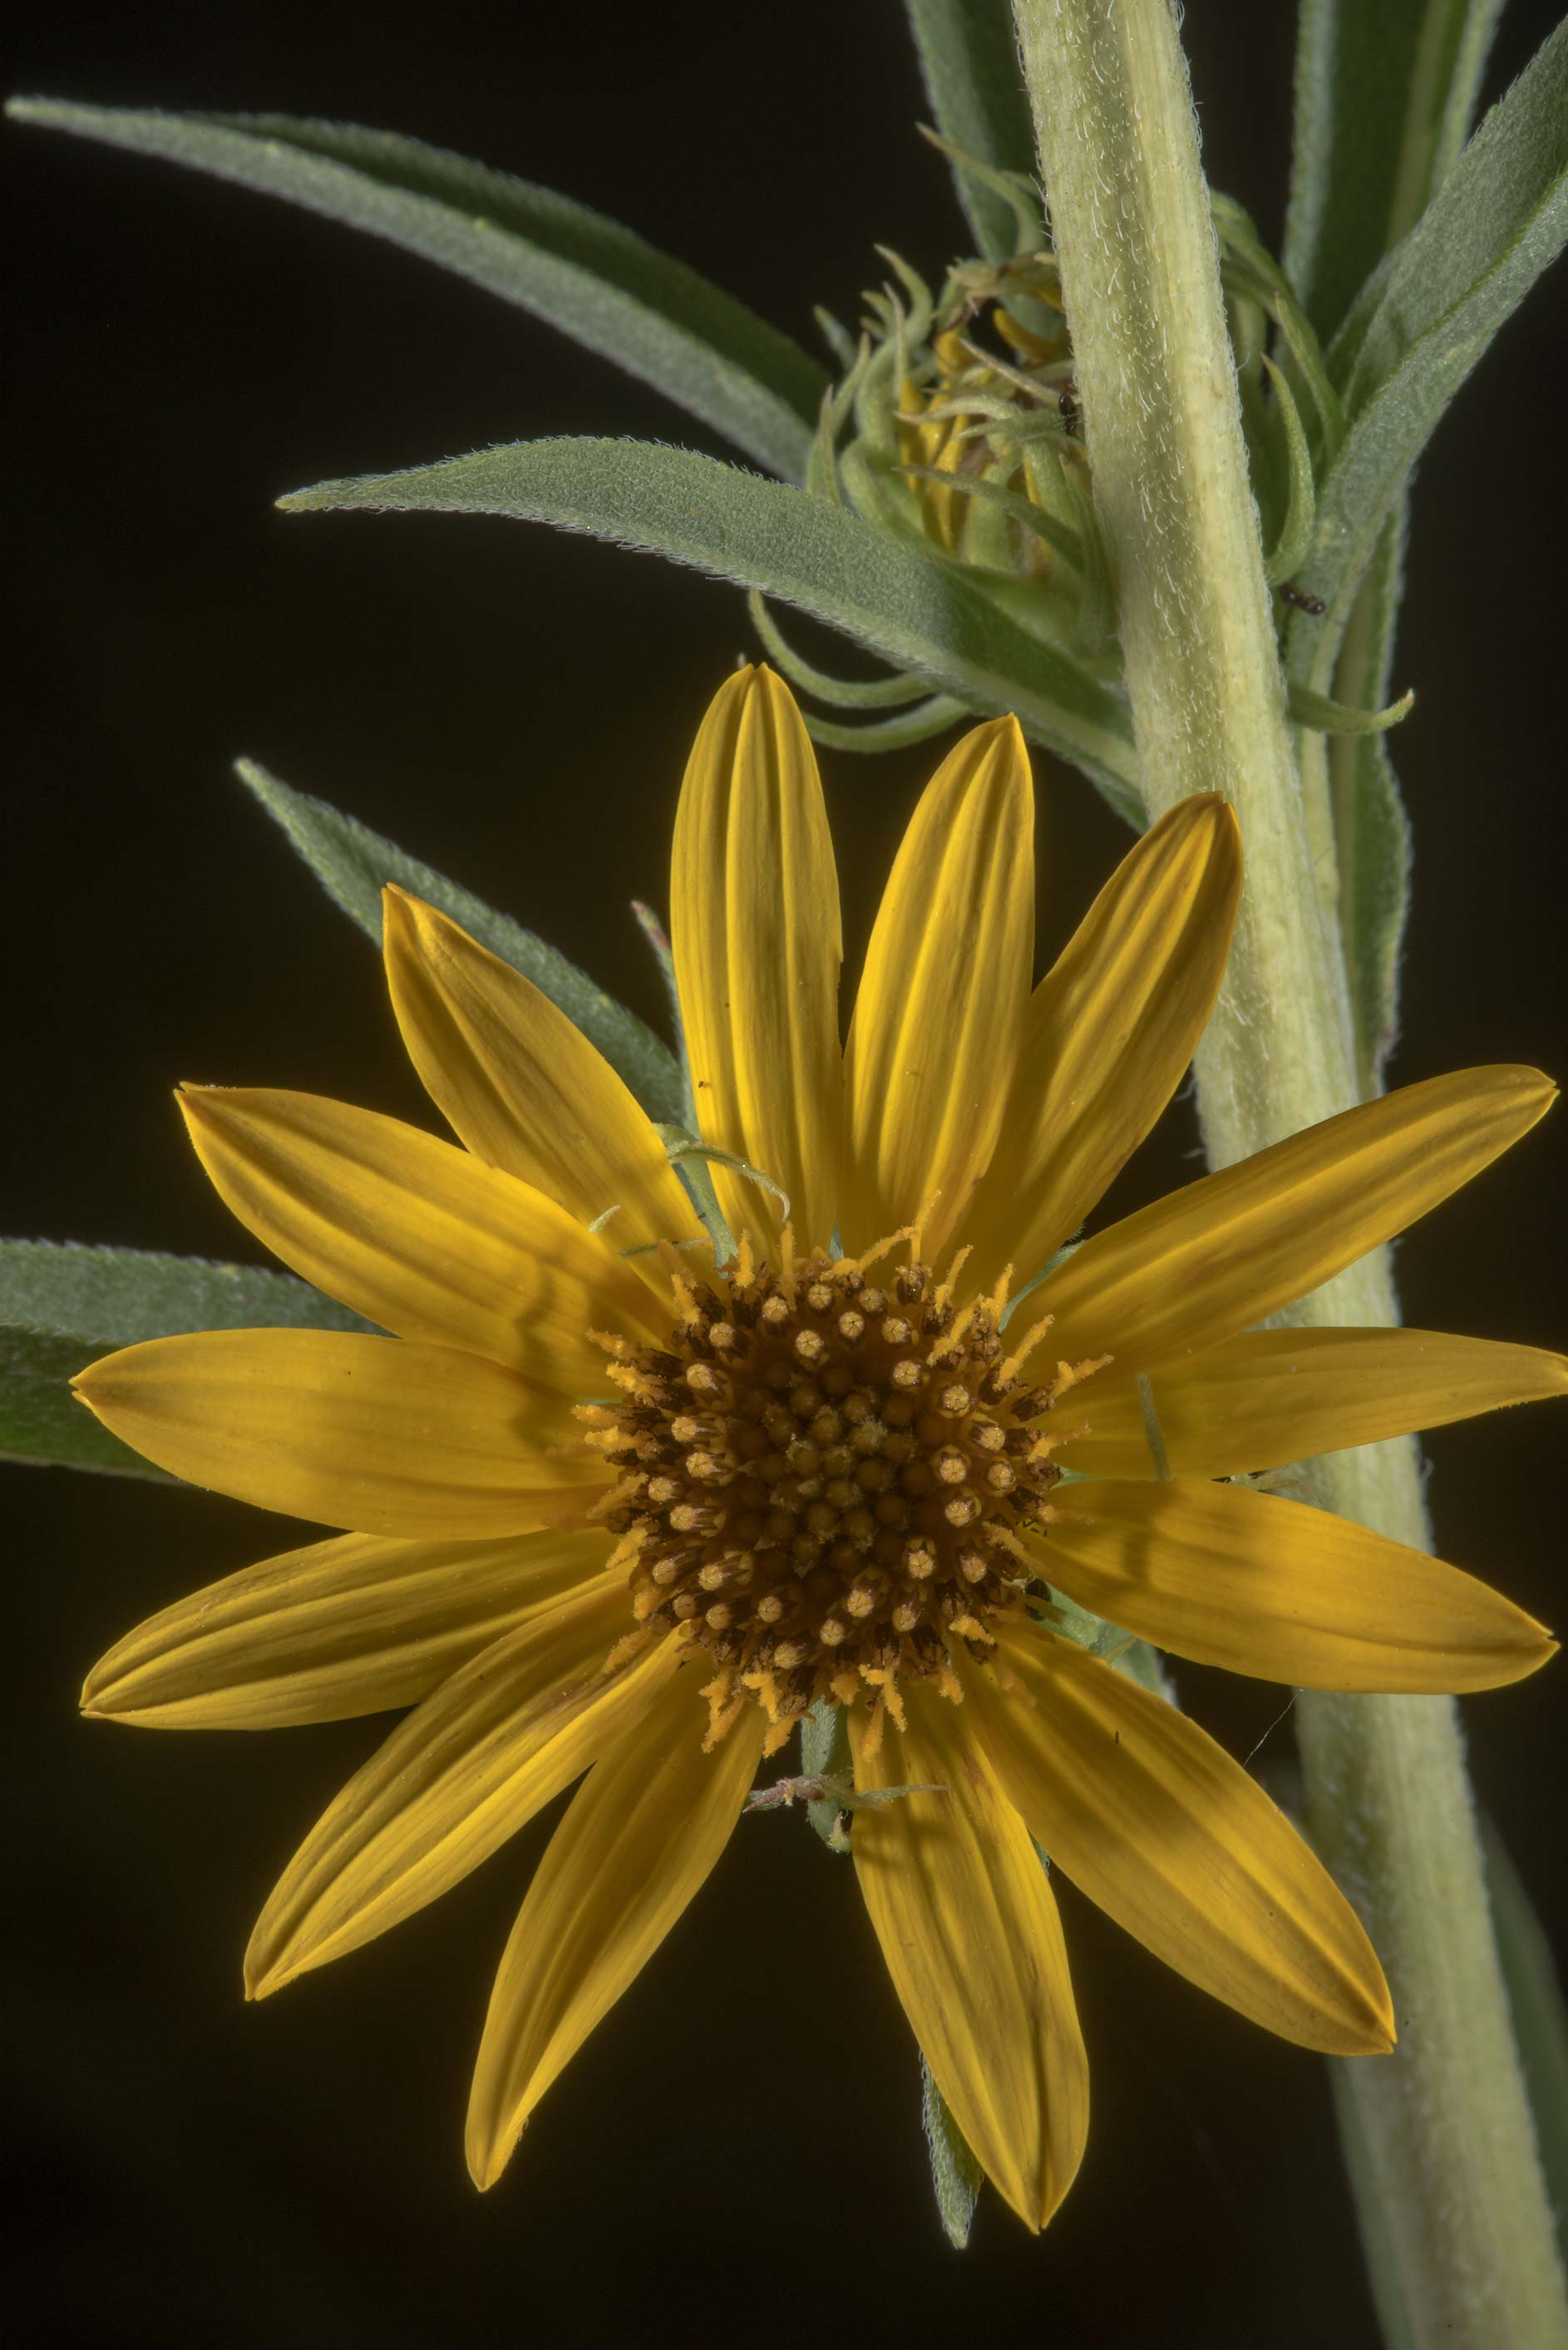 Yellow flower of aster family in David E. Schob...Ashburn St.. College Station, Texas